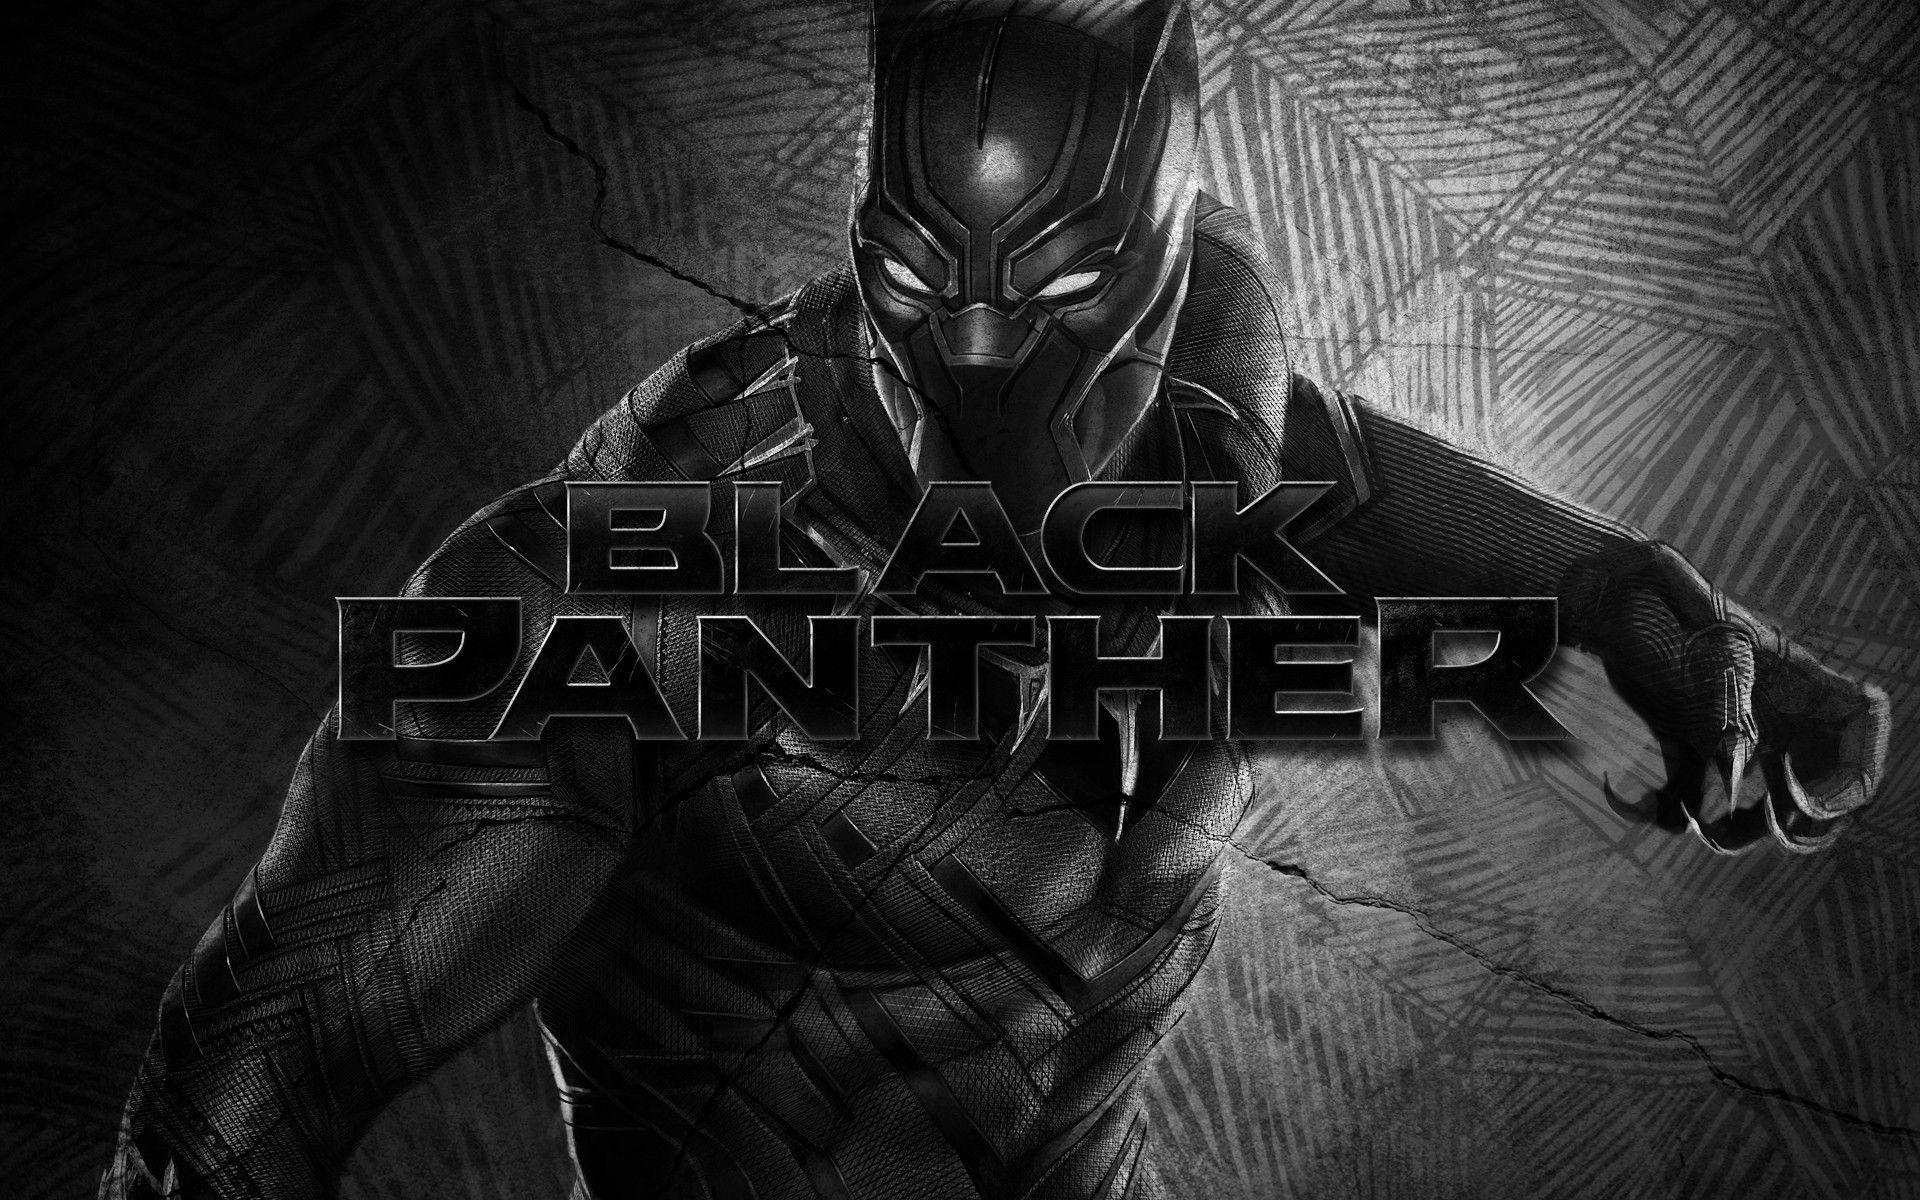 black panther full movie in hd, download movie black panther